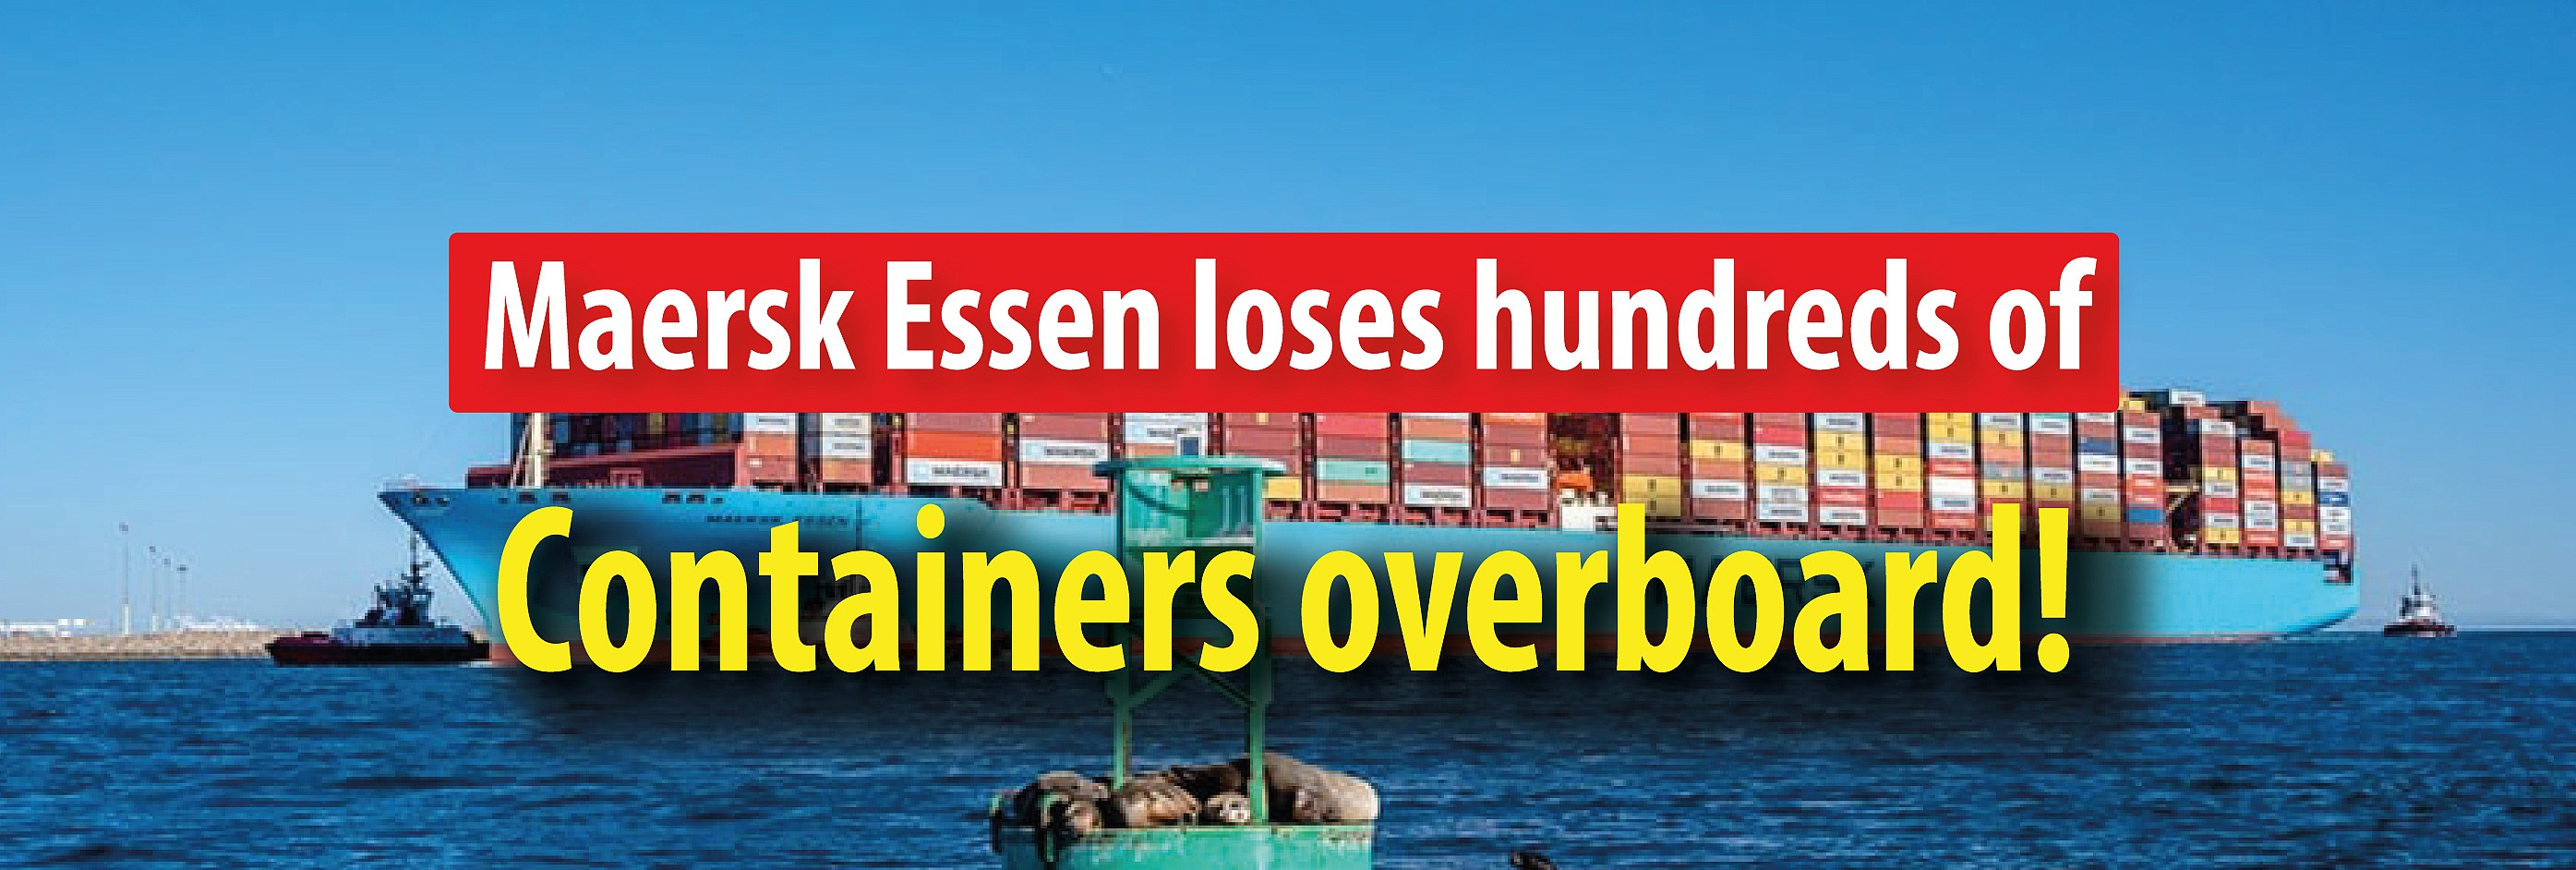 Maersk Essen Loses Some 750 Containers Overboard!